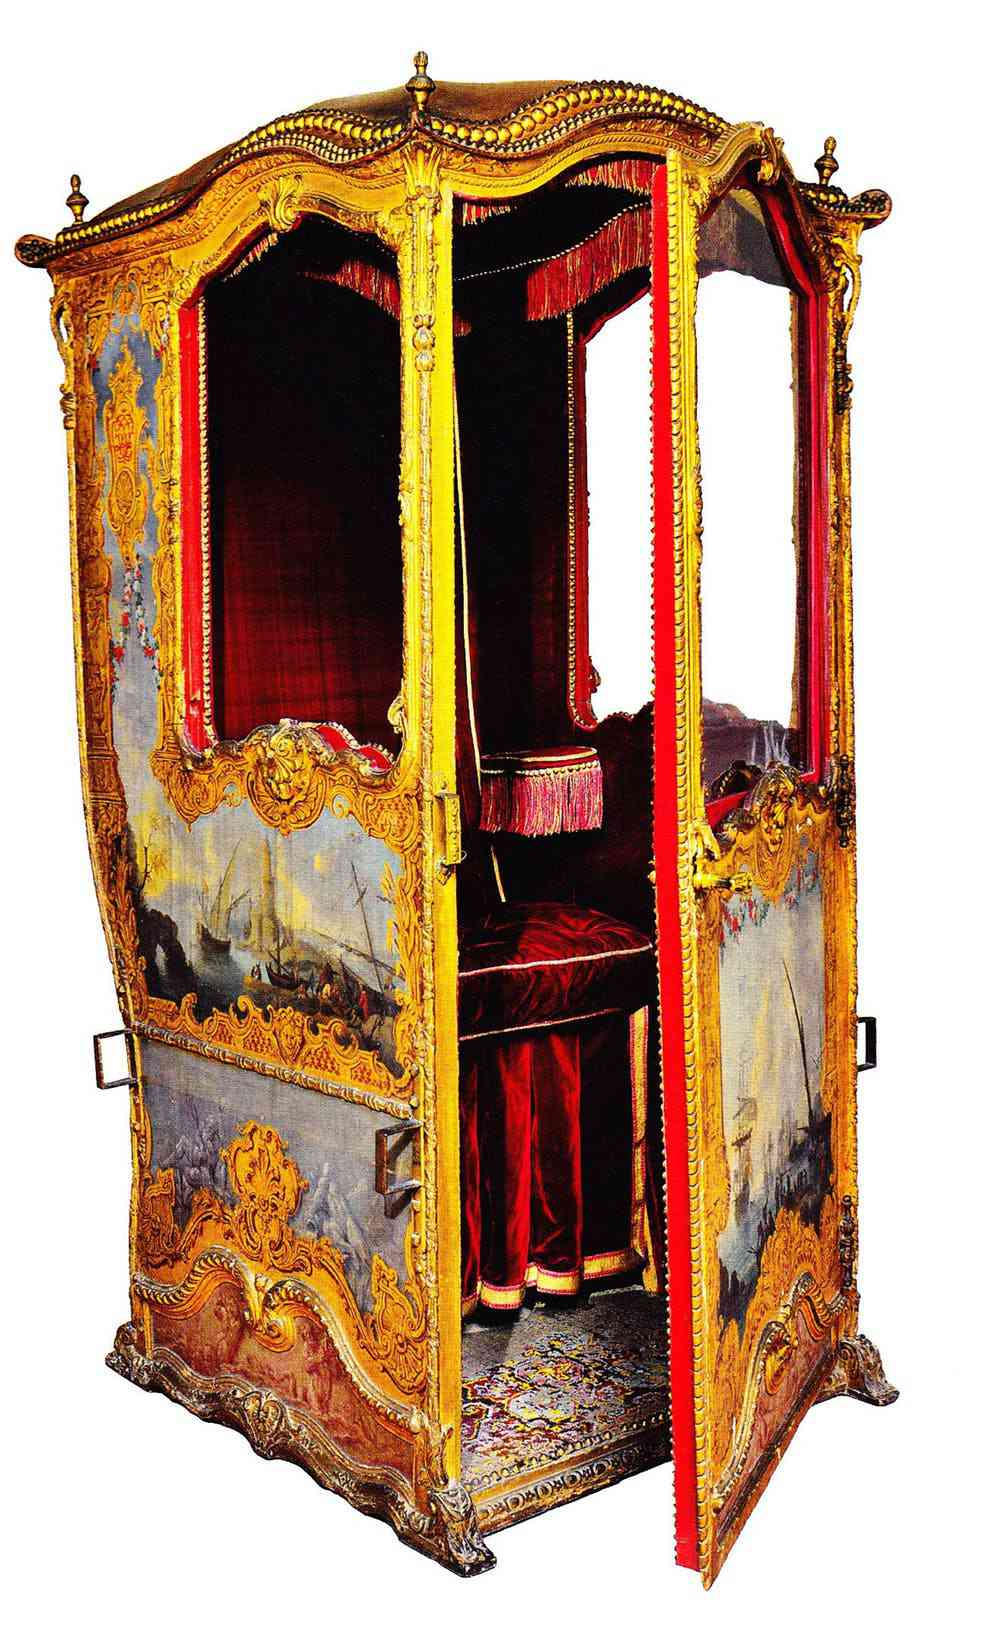 The sedan chair recommended by the anonymous citizen was also a privilege of the nobility during the Ancien Regime. Here is an example of a finely decorated model (circa 1730), decorated with designs of sailors and sailboats. Photo credit: Château de Versailles